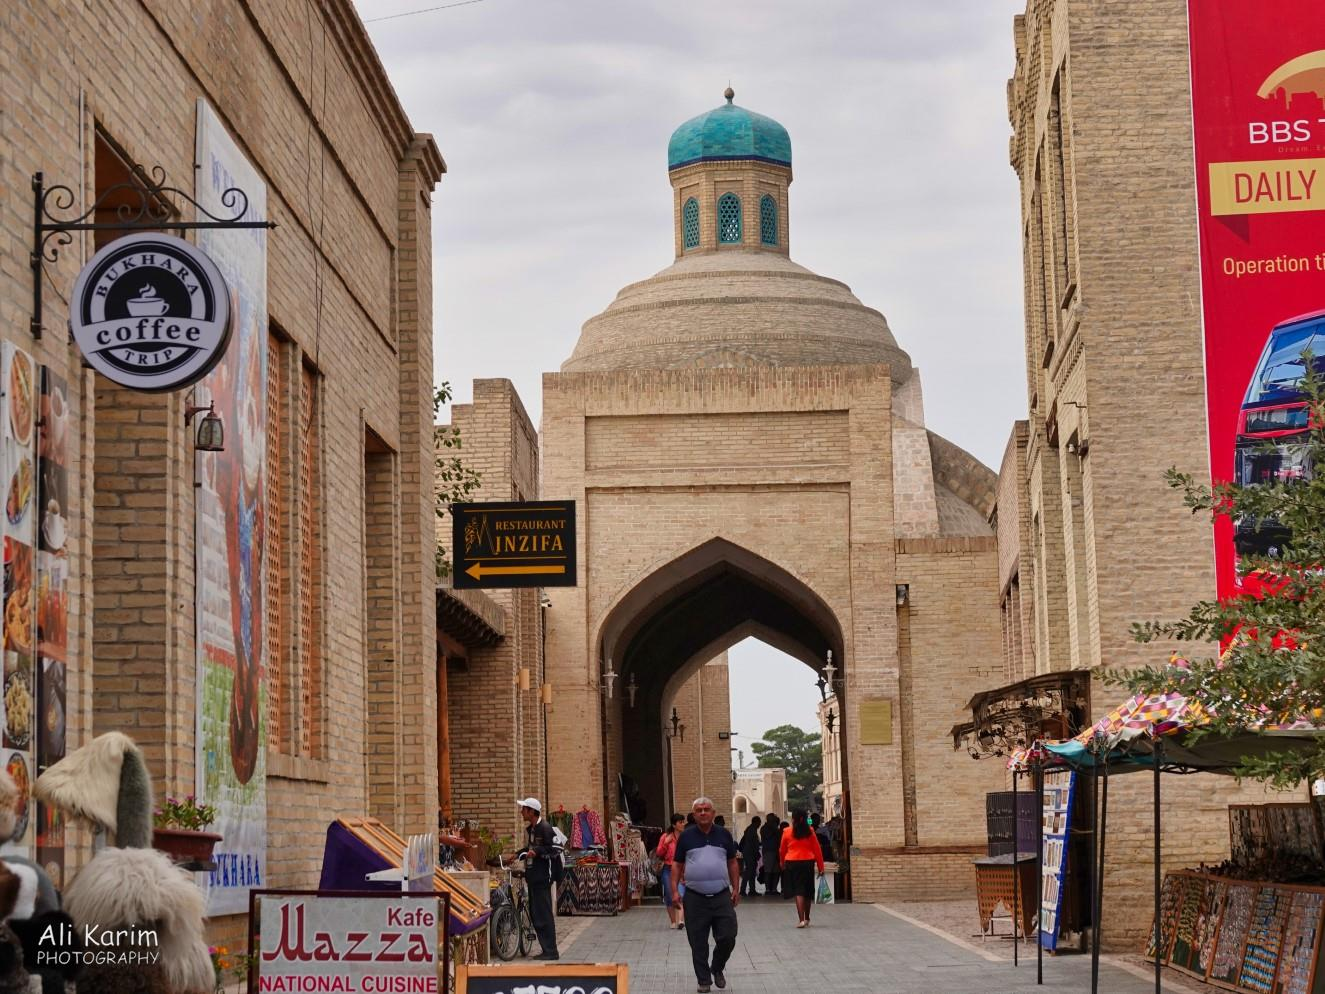 Bukhara, Oct 2019, An entrance into the main square of the old city